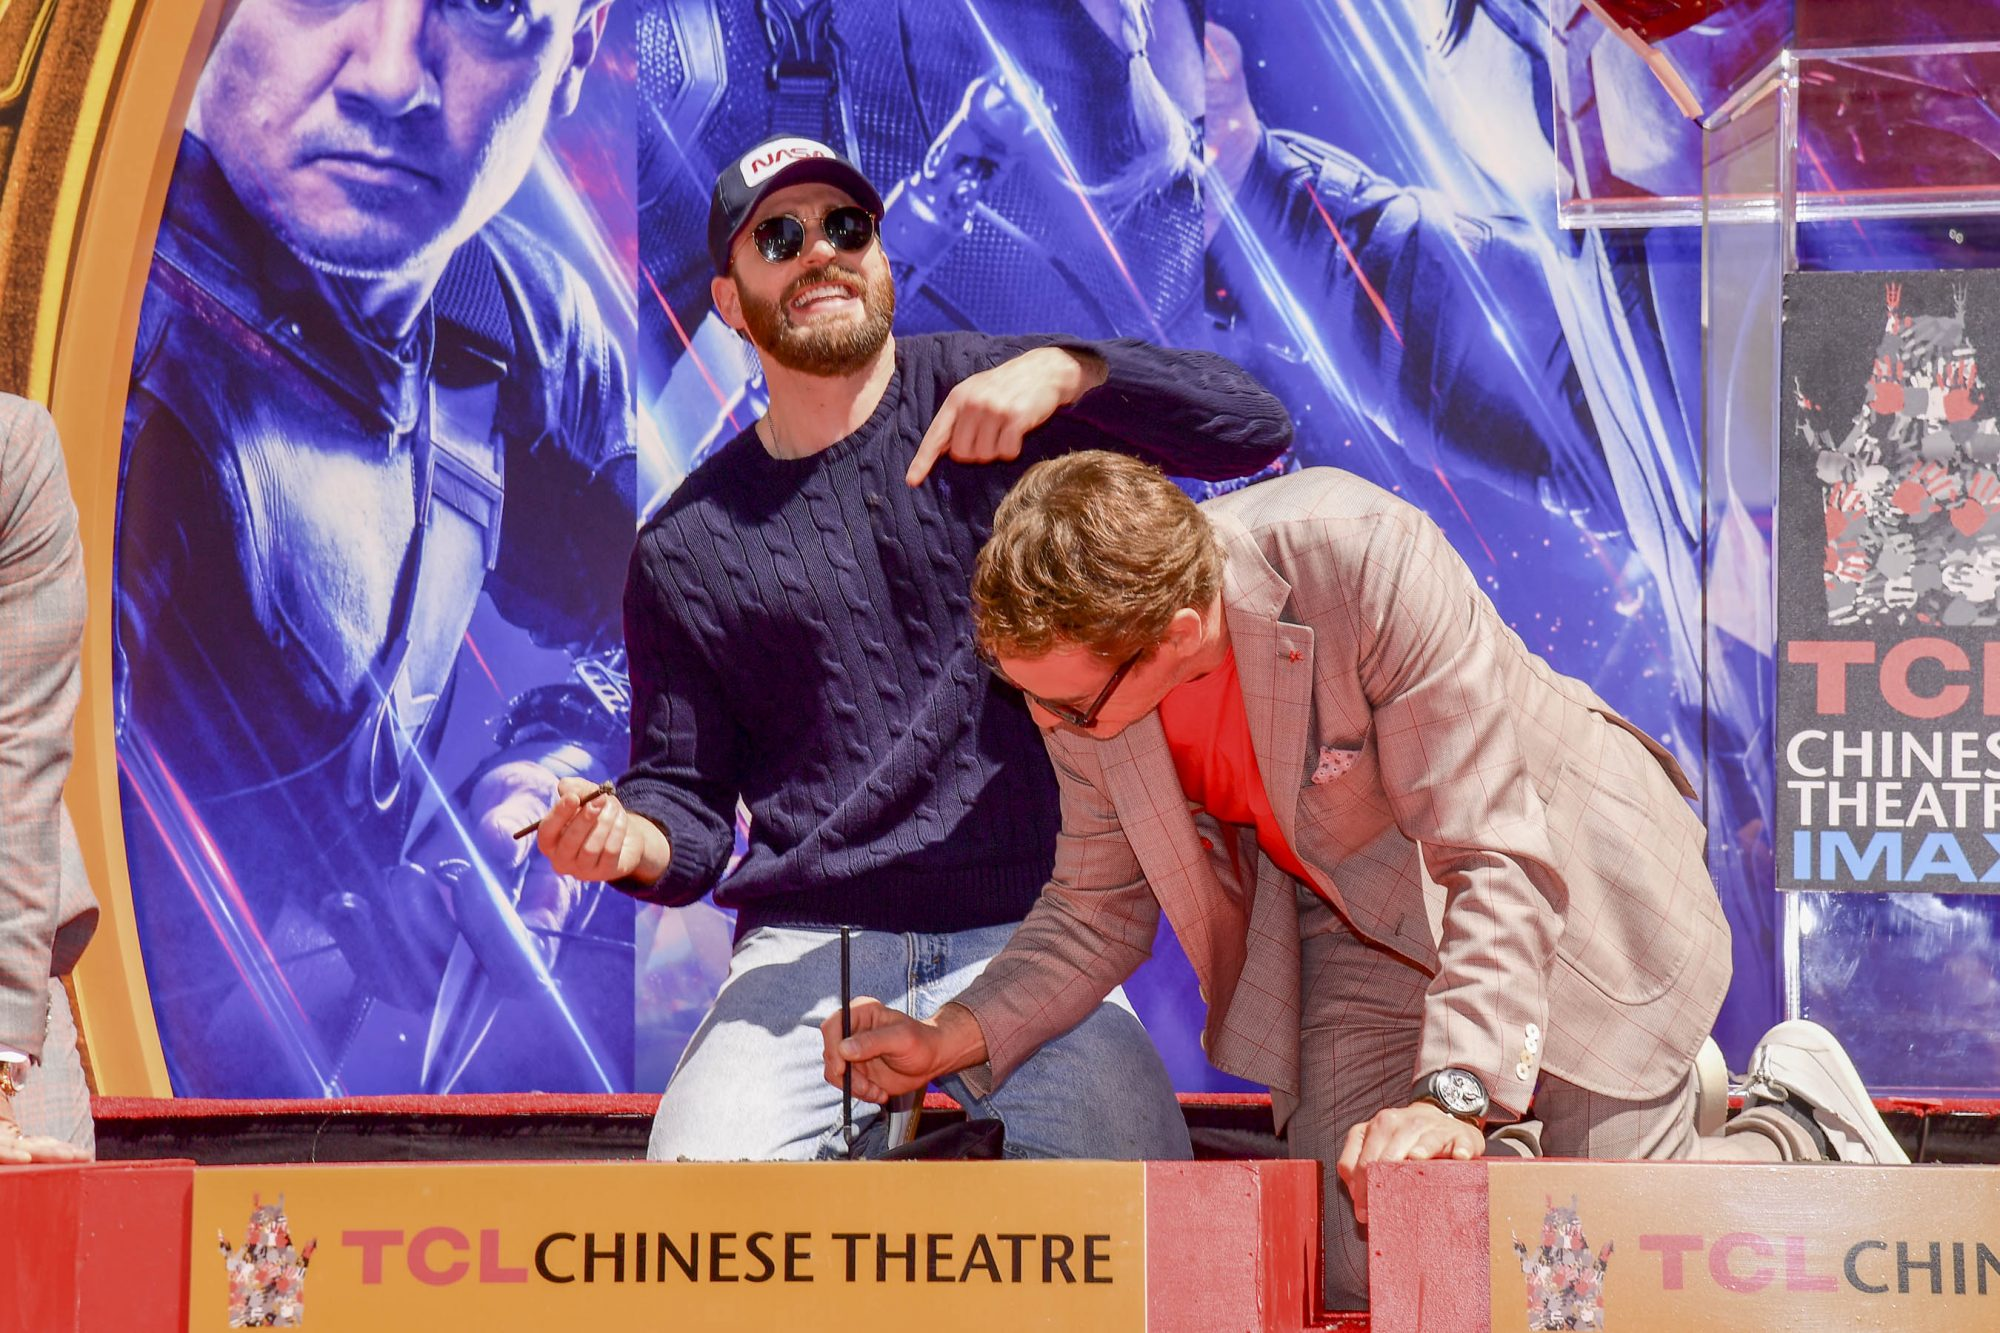 HOLLYWOOD, CALIFORNIA - APRIL 23: Chris Evans and Robert Downey Jr. pose at the Marvel Studios' 'Avengers: Endgame' Cast Place Their Hand Prints In Cement At TCL Chinese Theatre IMAX Forecourt at TCL Chinese Theatre IMAX on April 23, 2019 in Hollywood, California. (Photo by Matt Winkelmeyer/Getty Images)